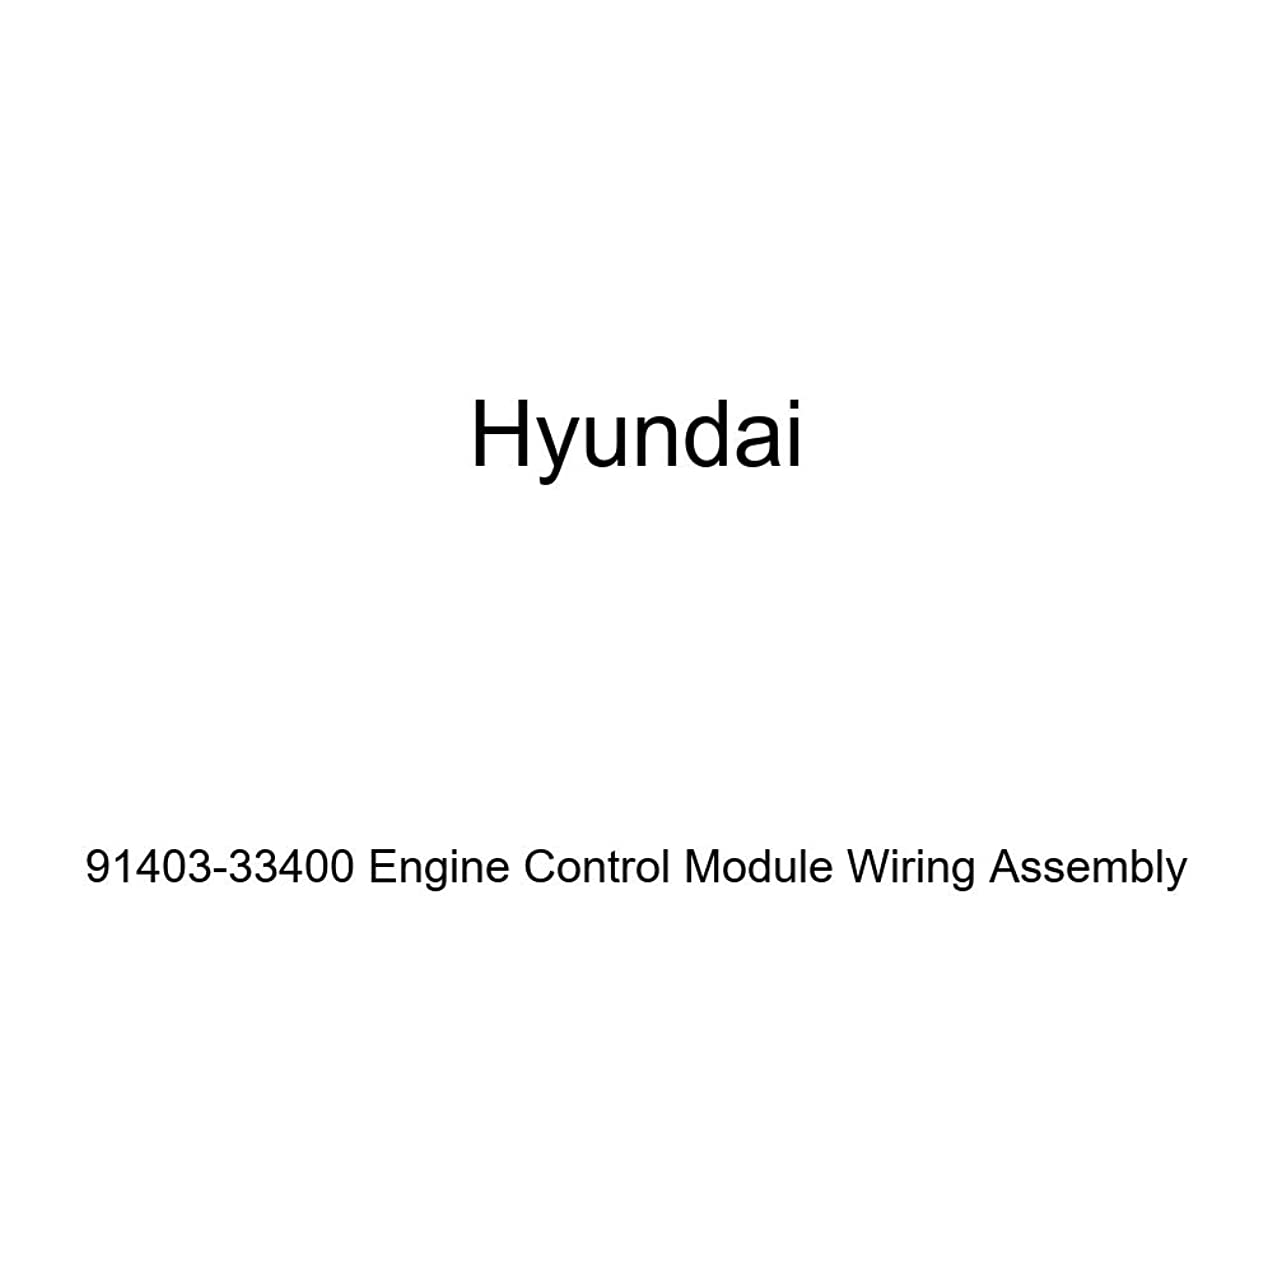 Genuine Hyundai 91403-33400 Engine Control Module Wiring Assembly